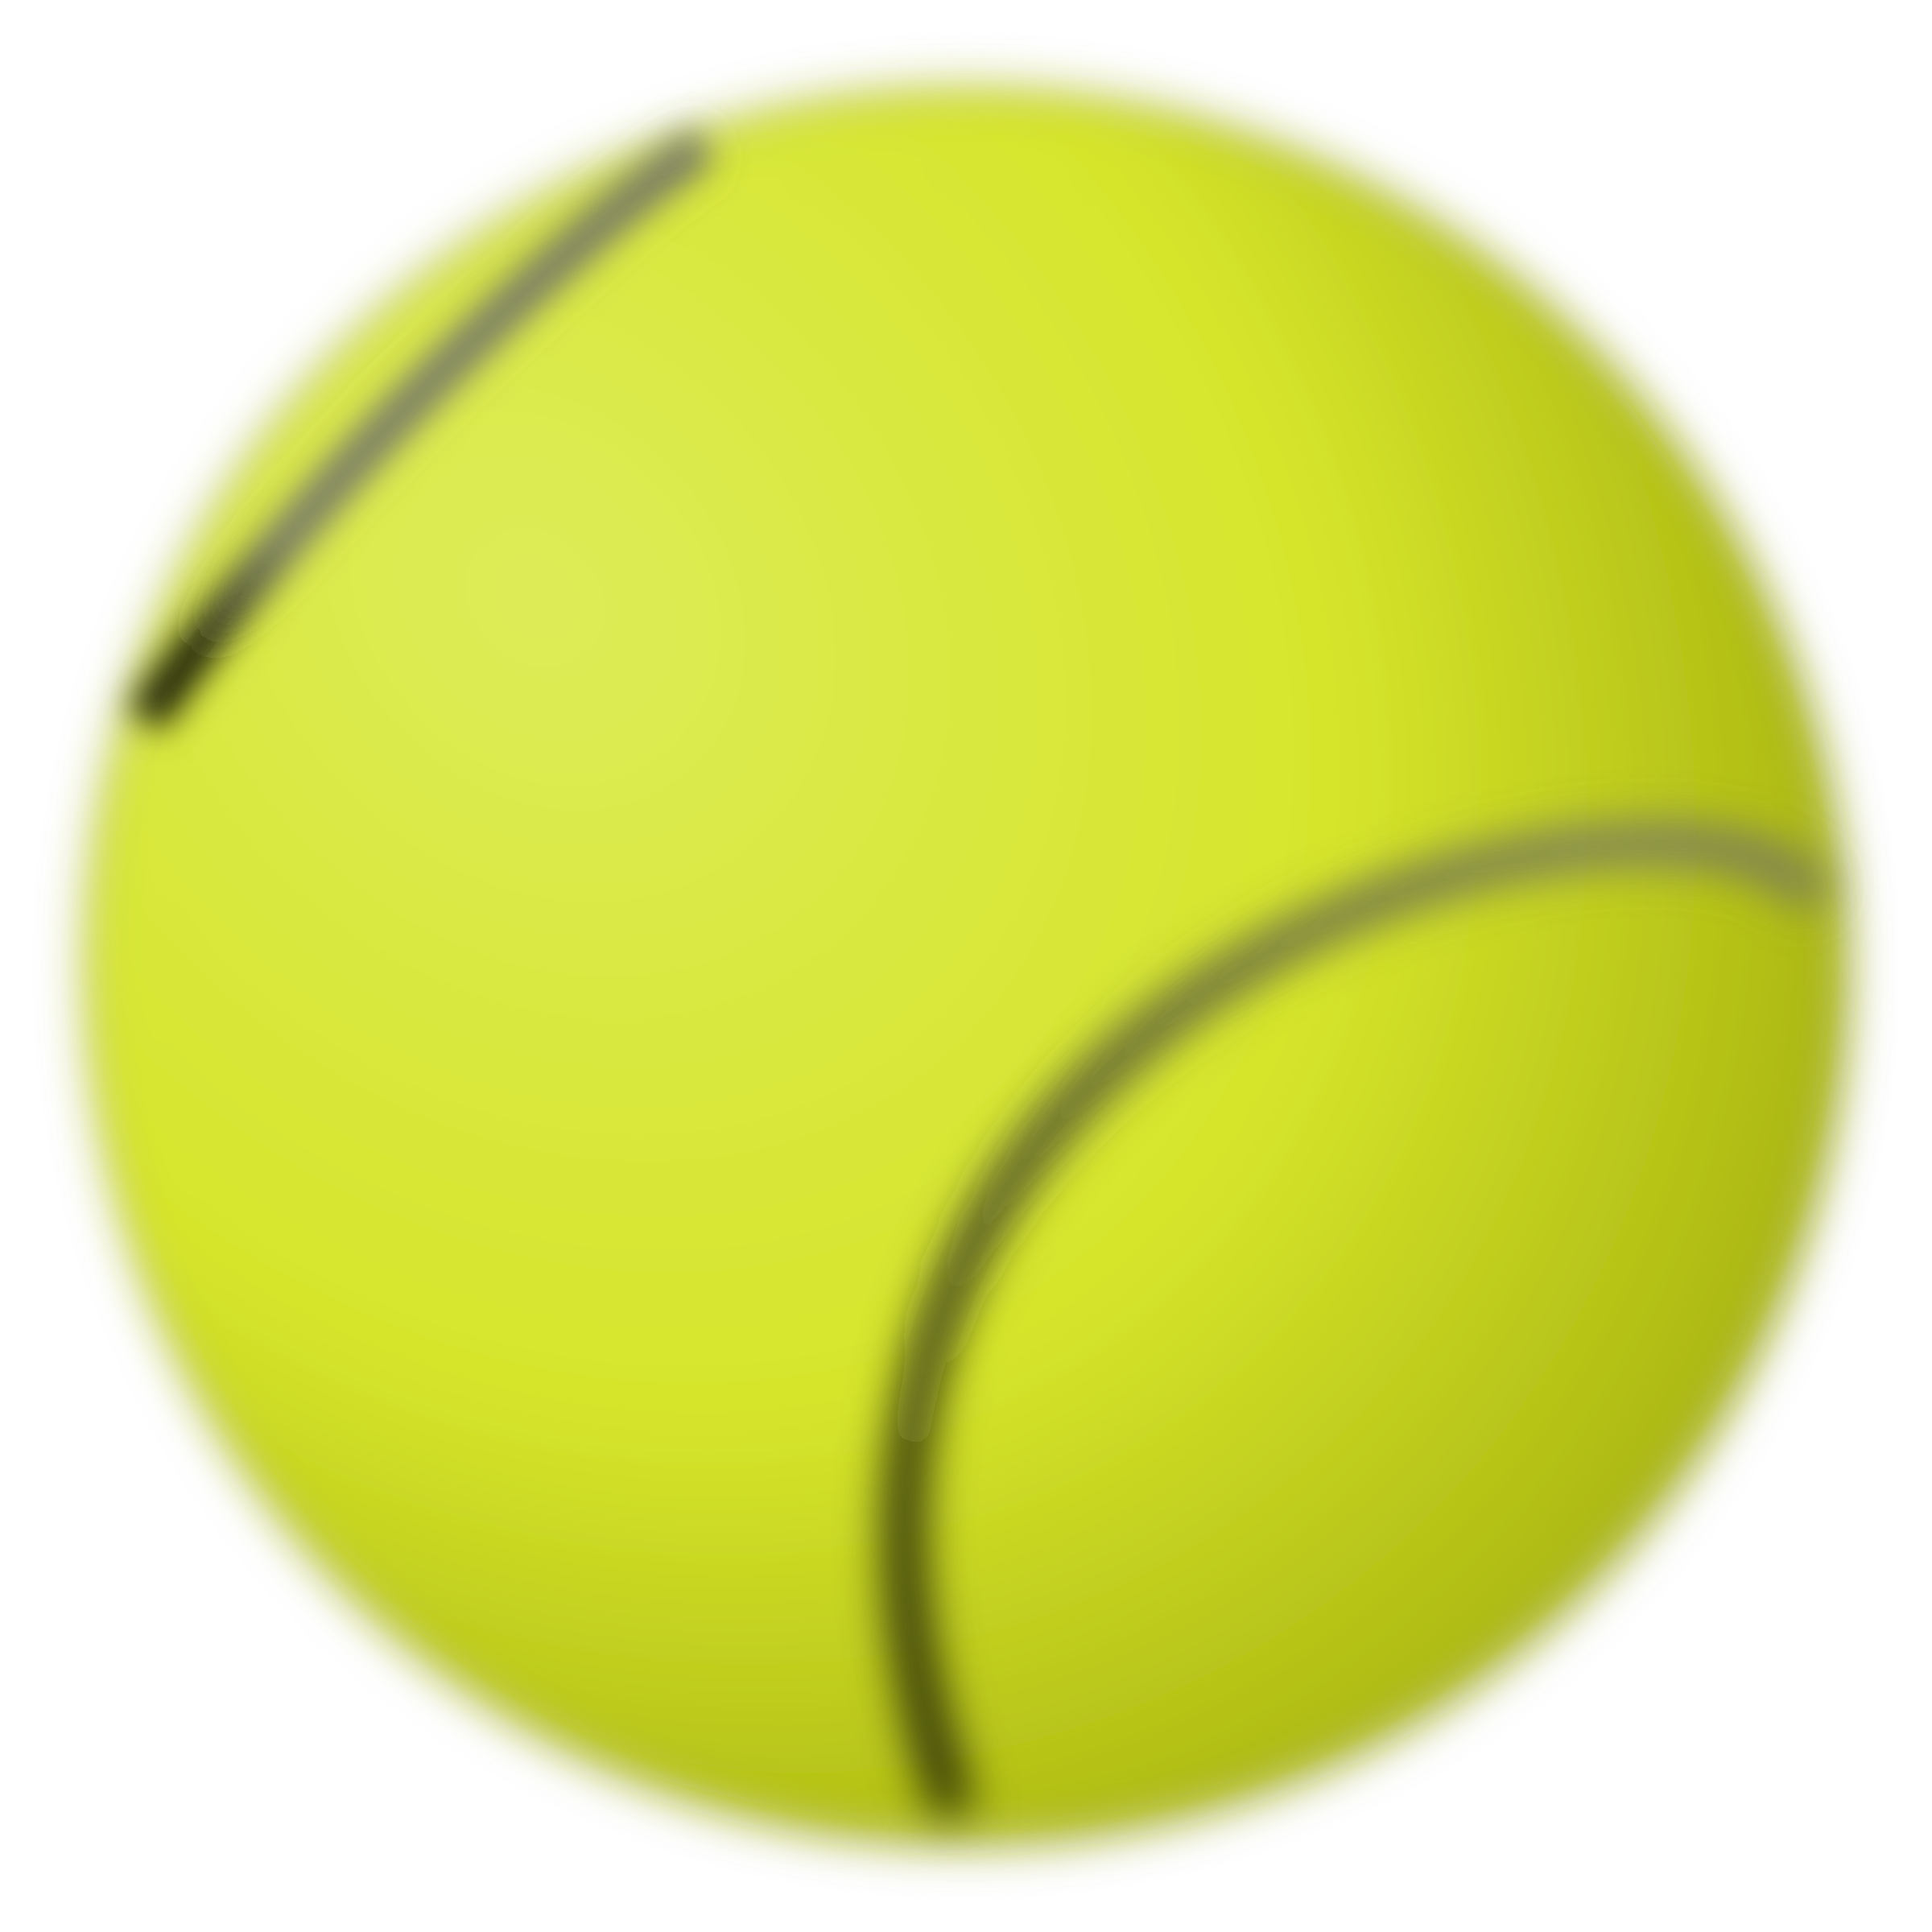 Tennis ball by Gioppino